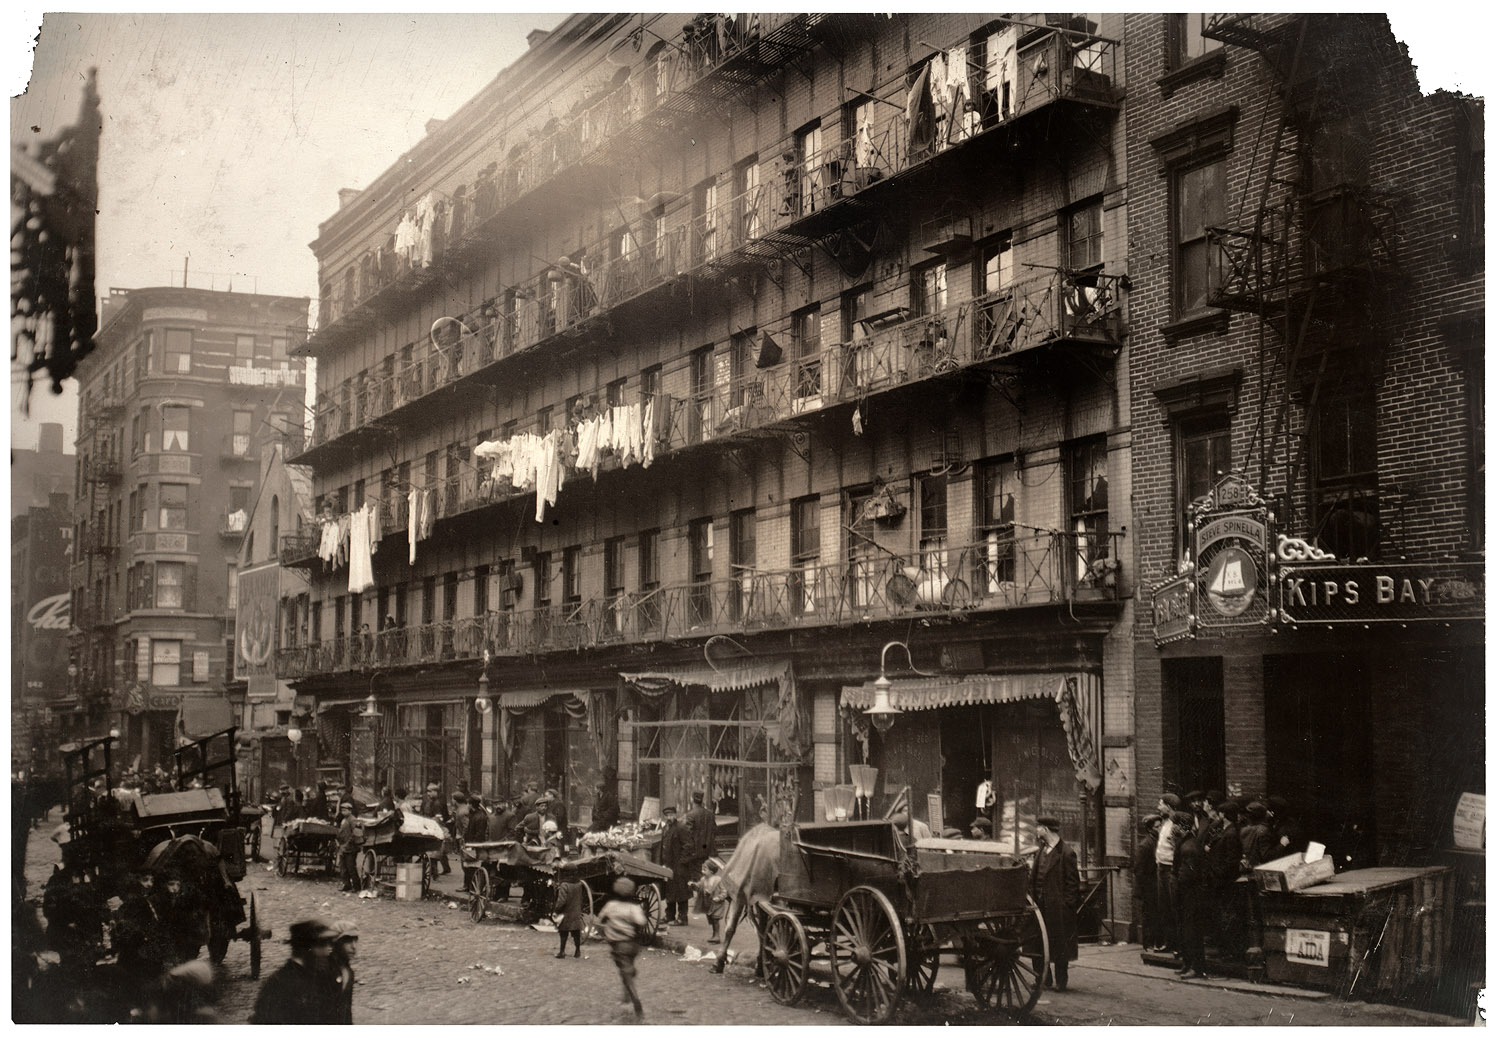 Elizabeth Street near Houston Street 1912 (Cleaned up image courtesy Shorpy)